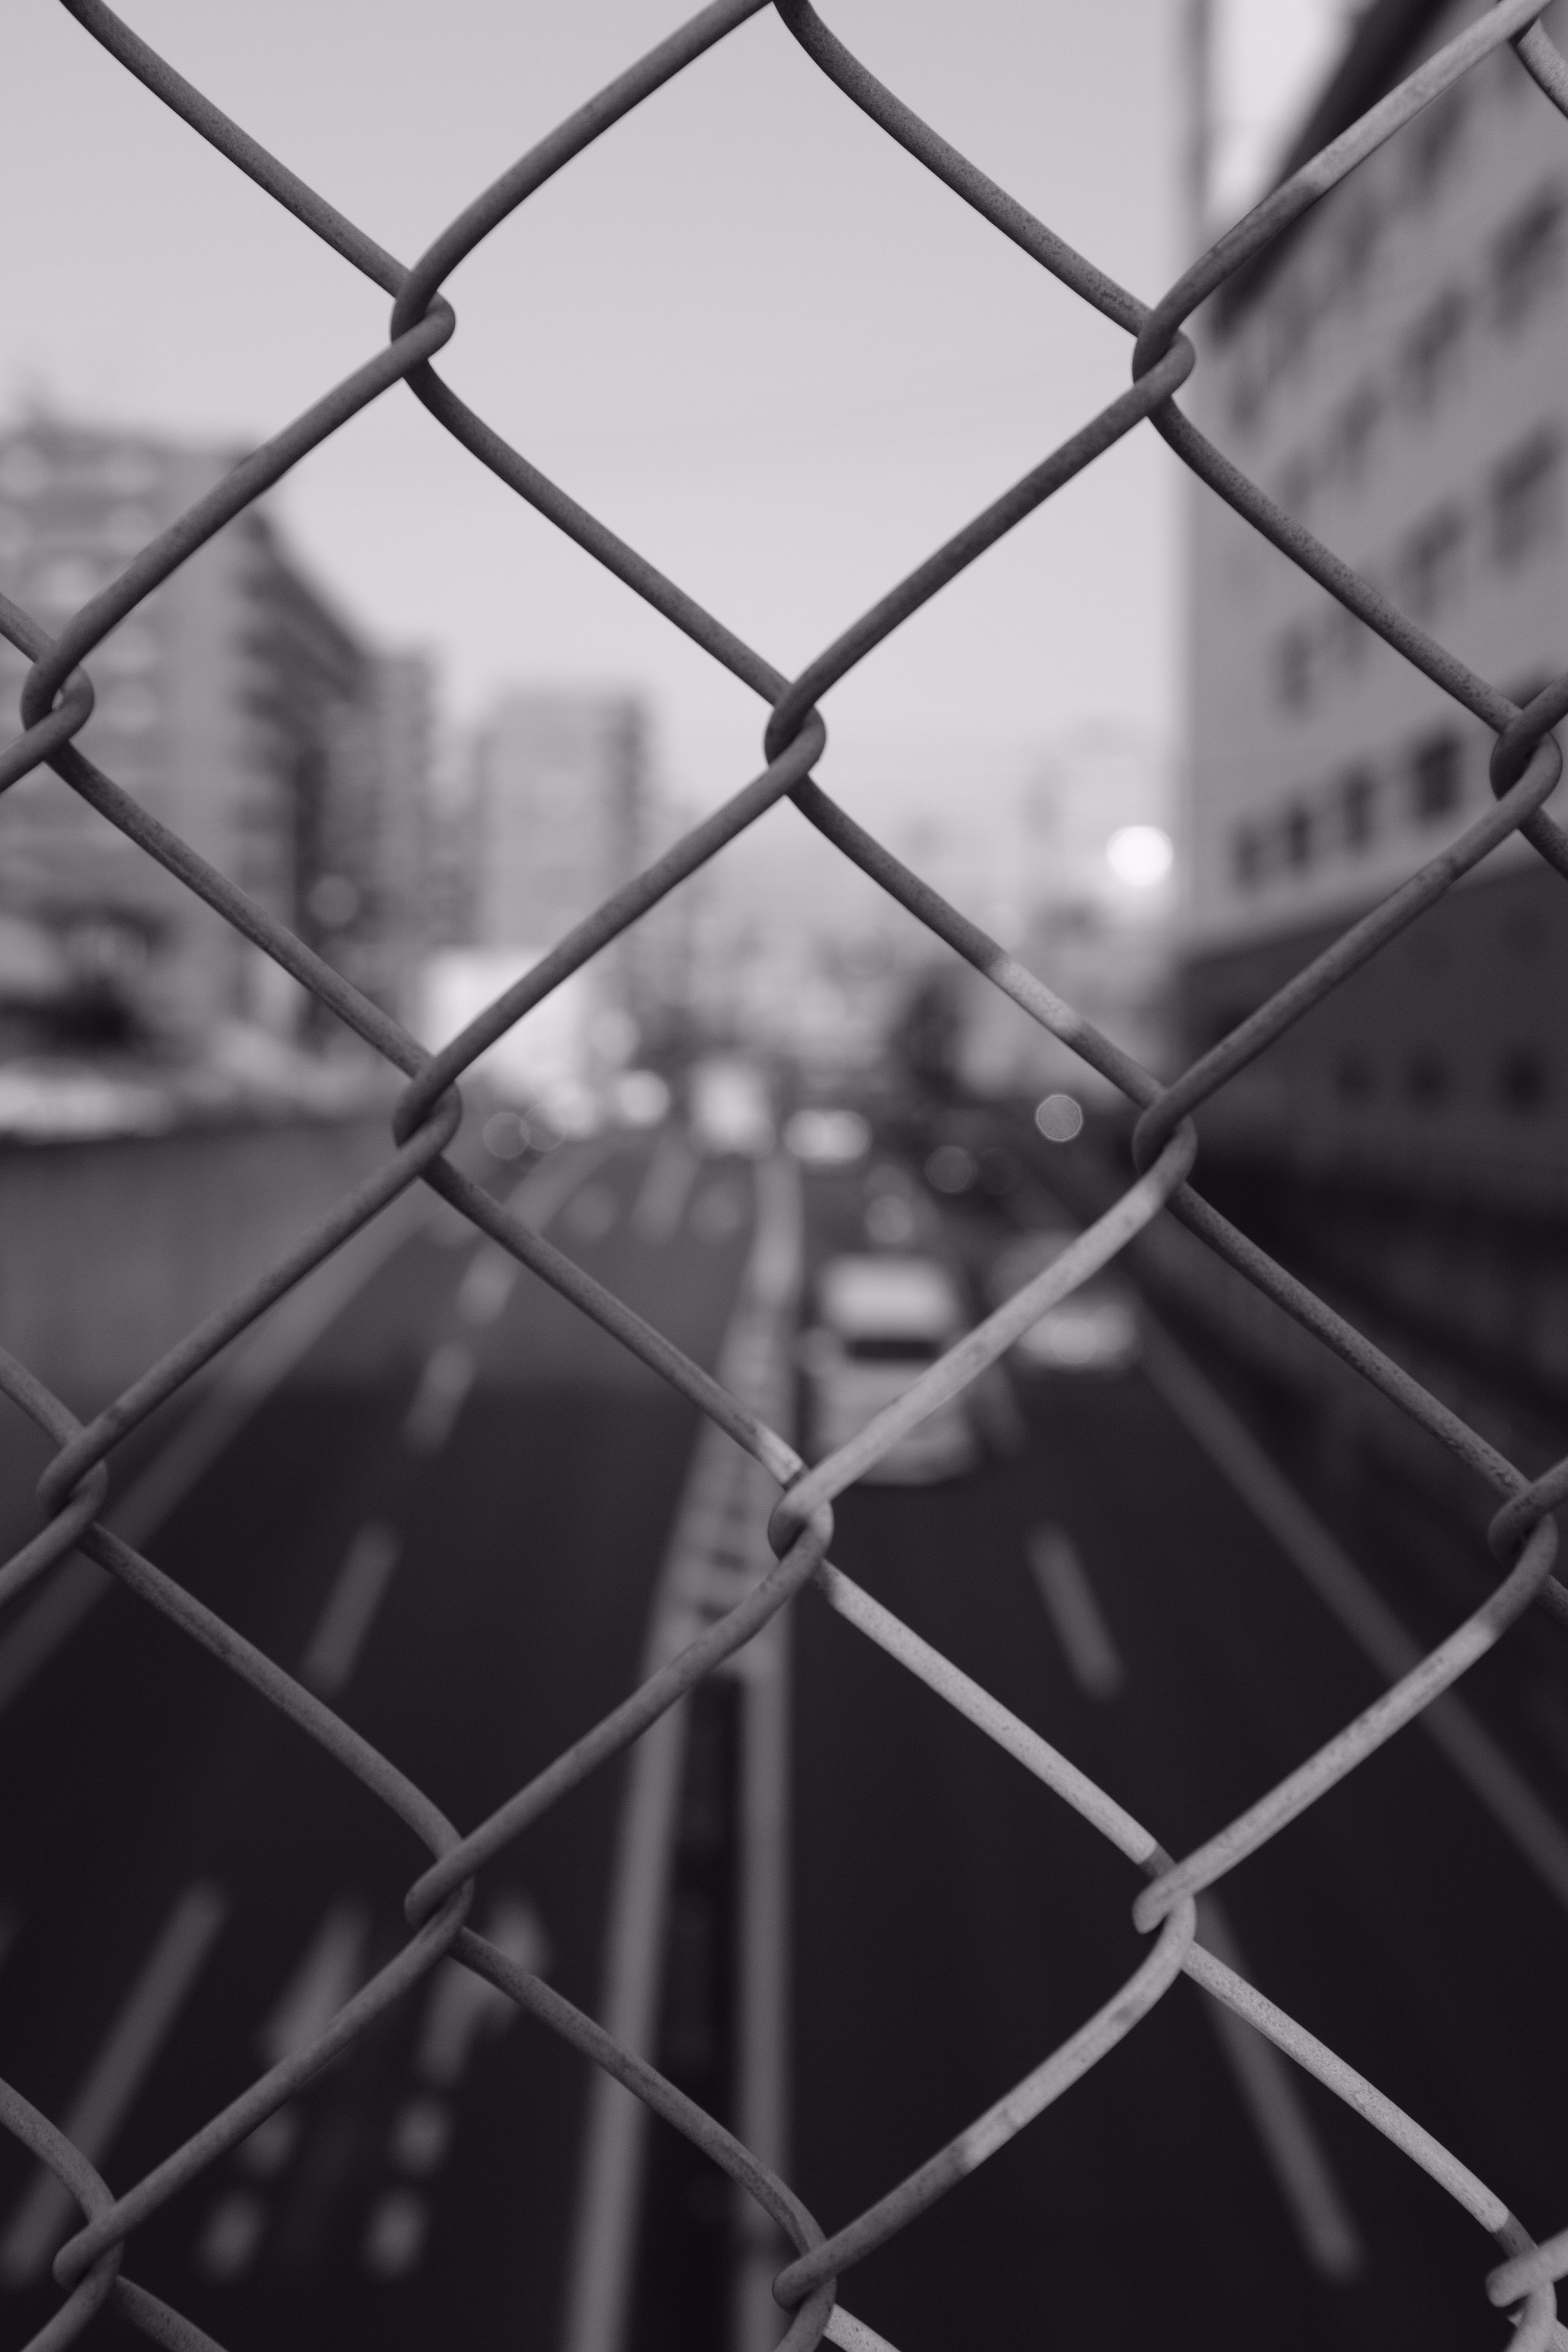 grayscale photography of chain link fence